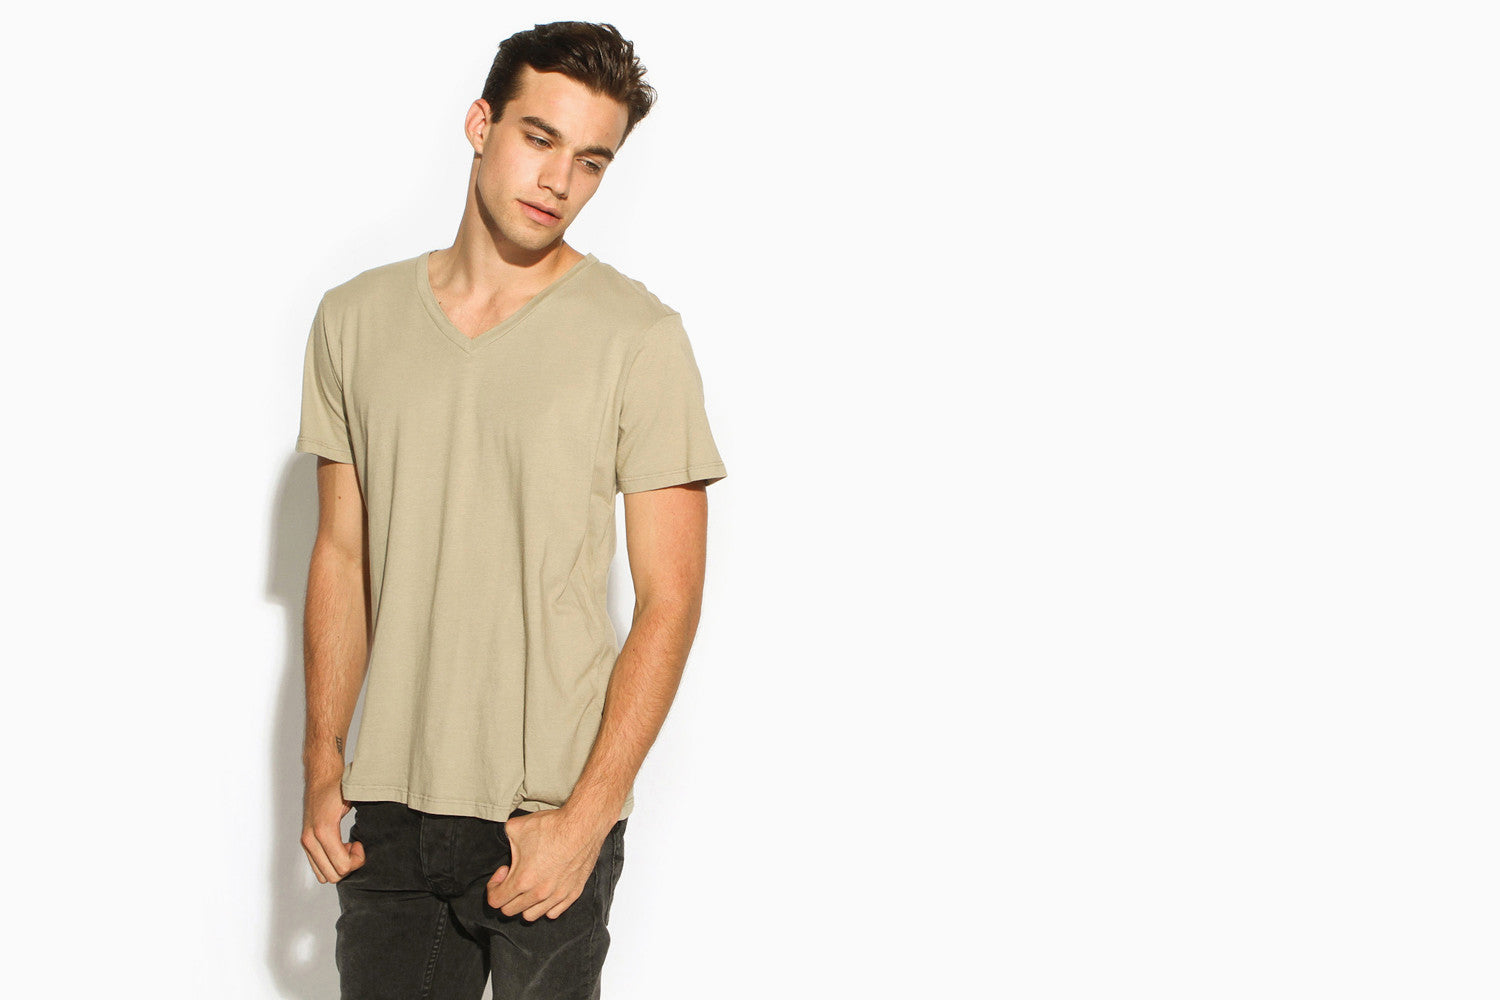 Men's Premium Basic High Cut V-Neck Tee (Gerolsteiner)